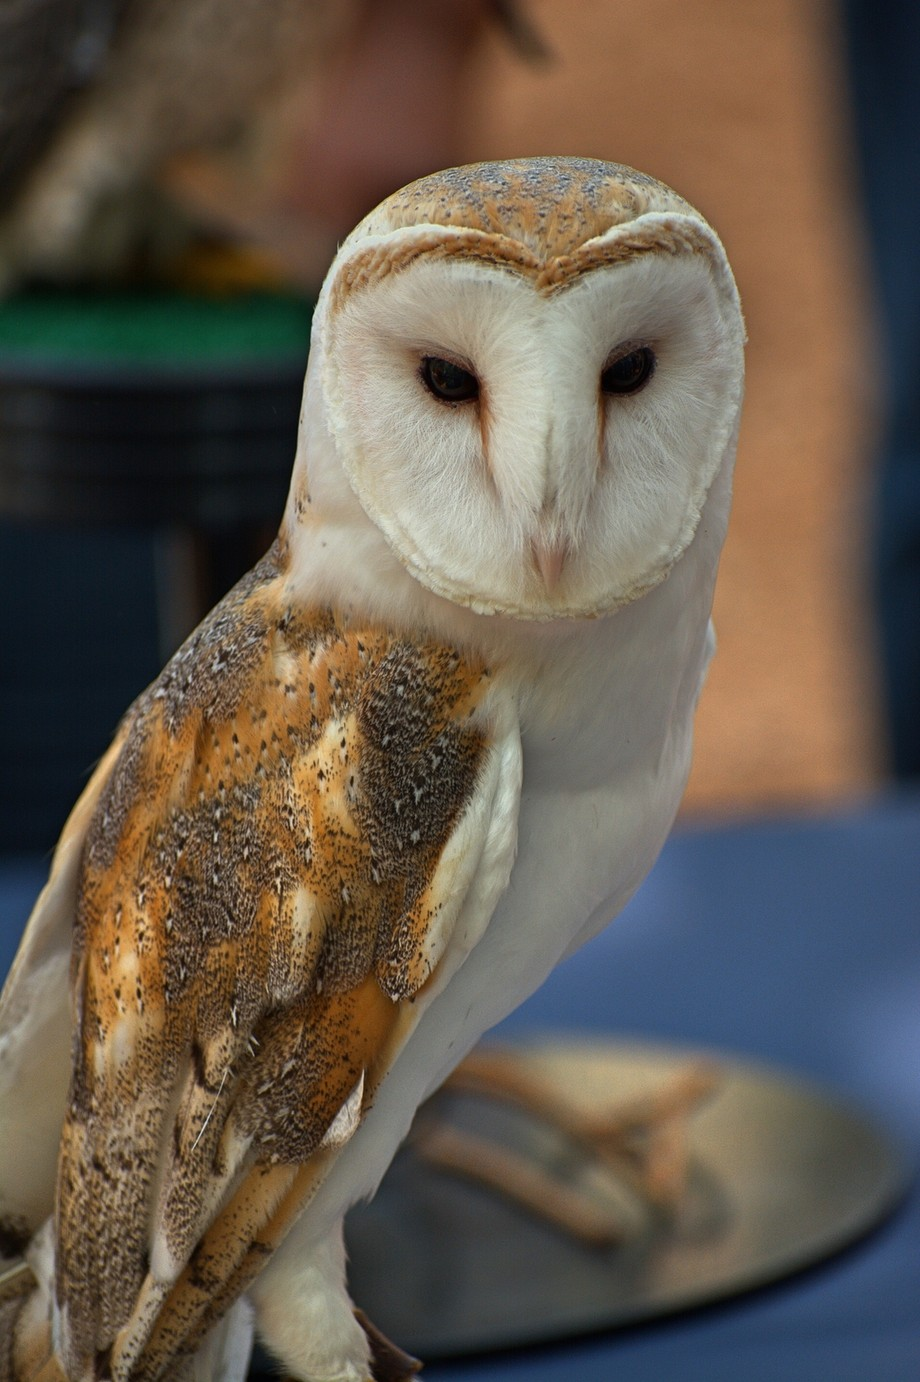 Finally got my Owl shot, Captive Barn Owl at Earth Day celebration